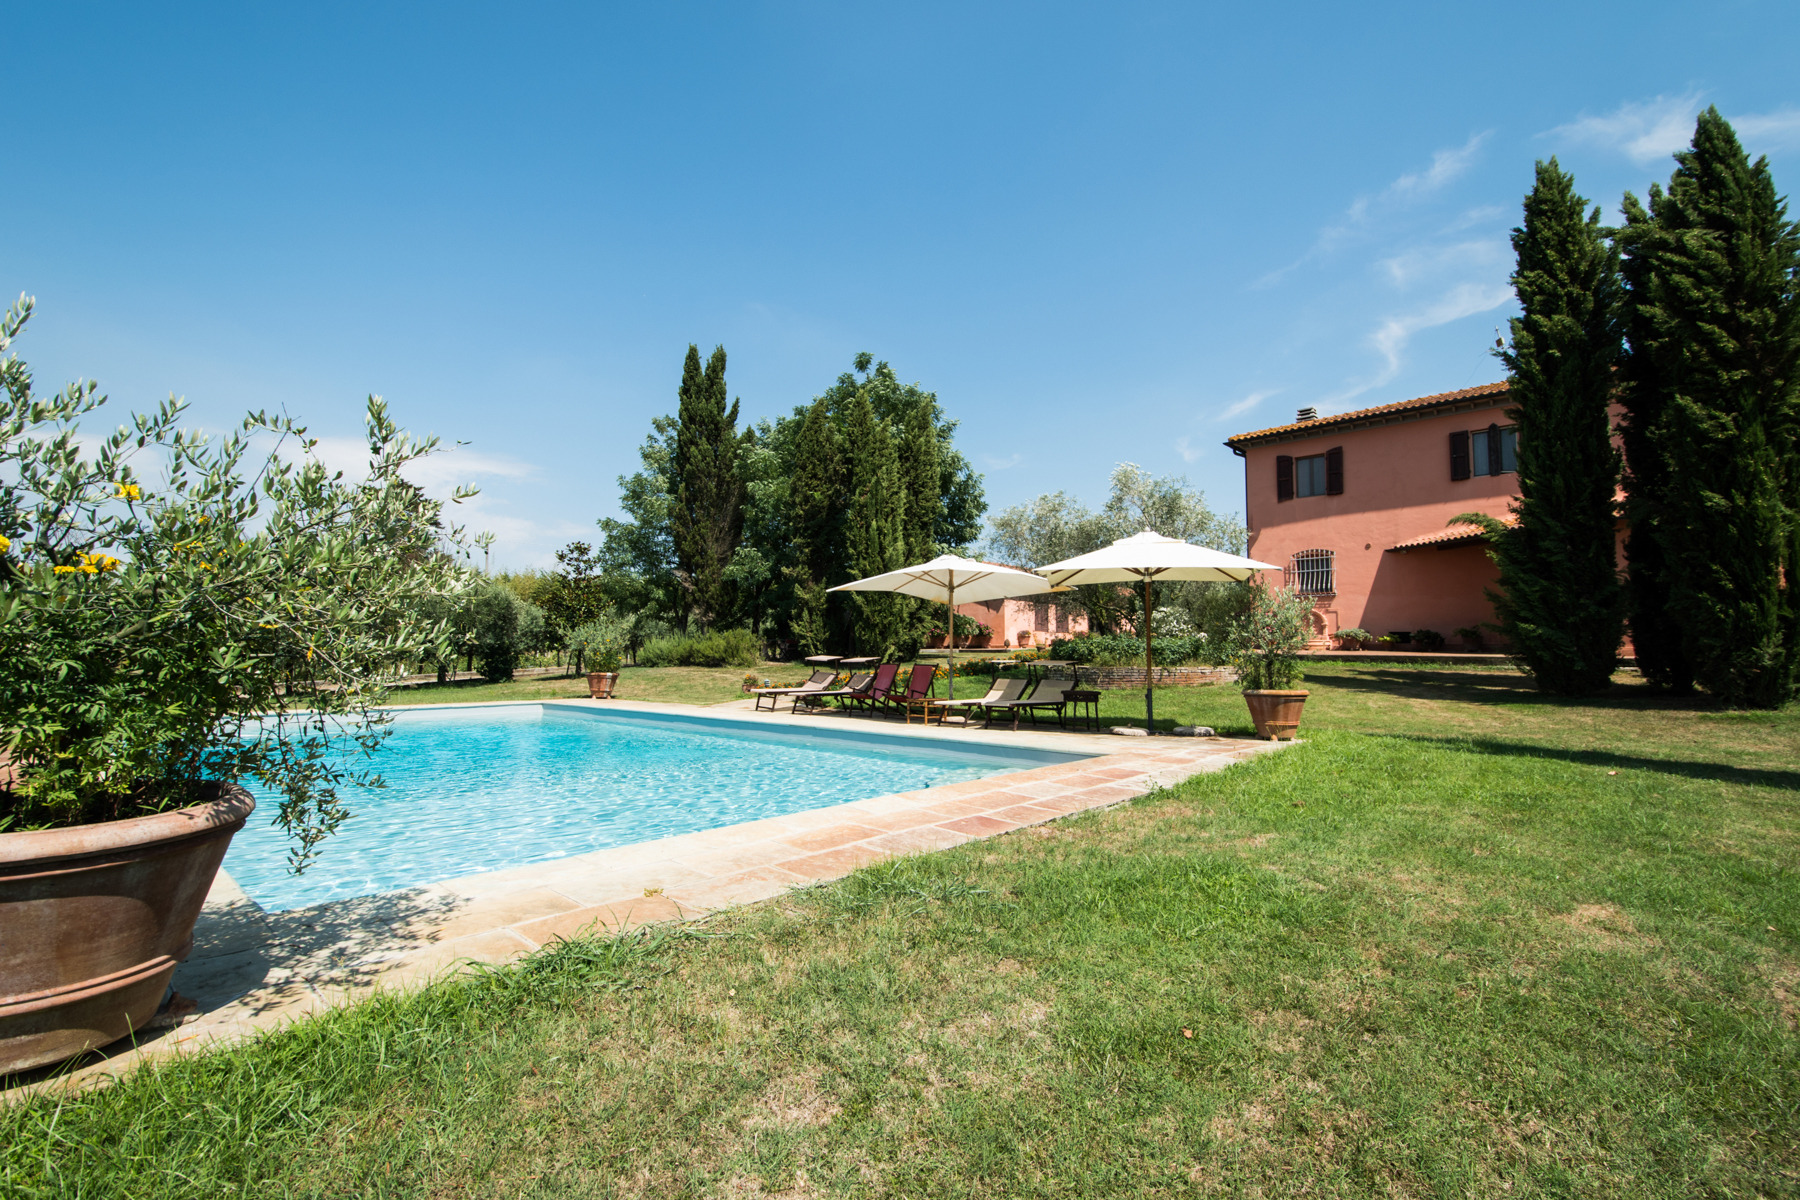 Single Family Home for Sale at Charming country home near Pisa Via Volpaia Crespina, Pisa 56042 Italy